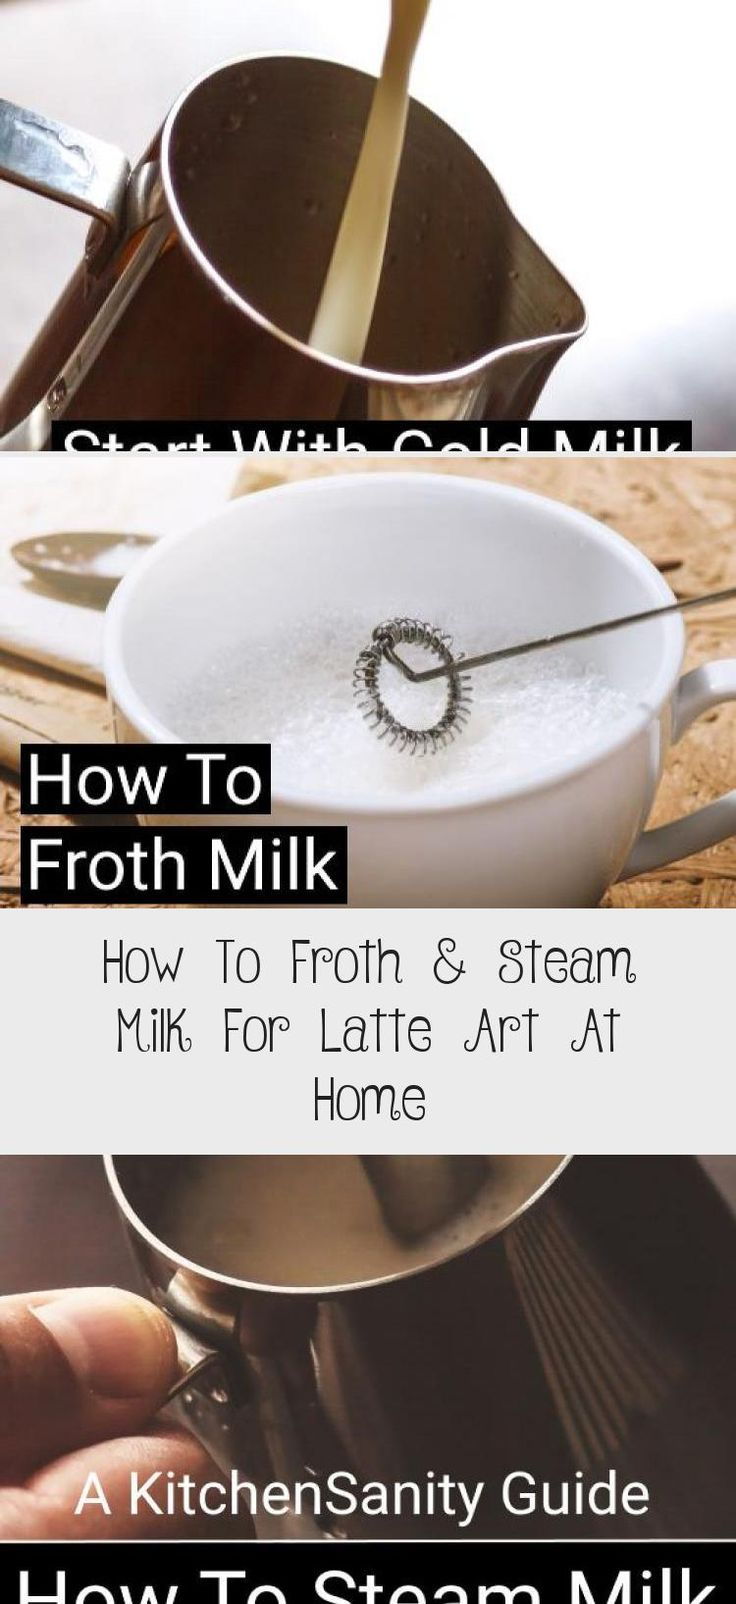 How To Froth & Steam Milk For Latte Art At Home COFFEE